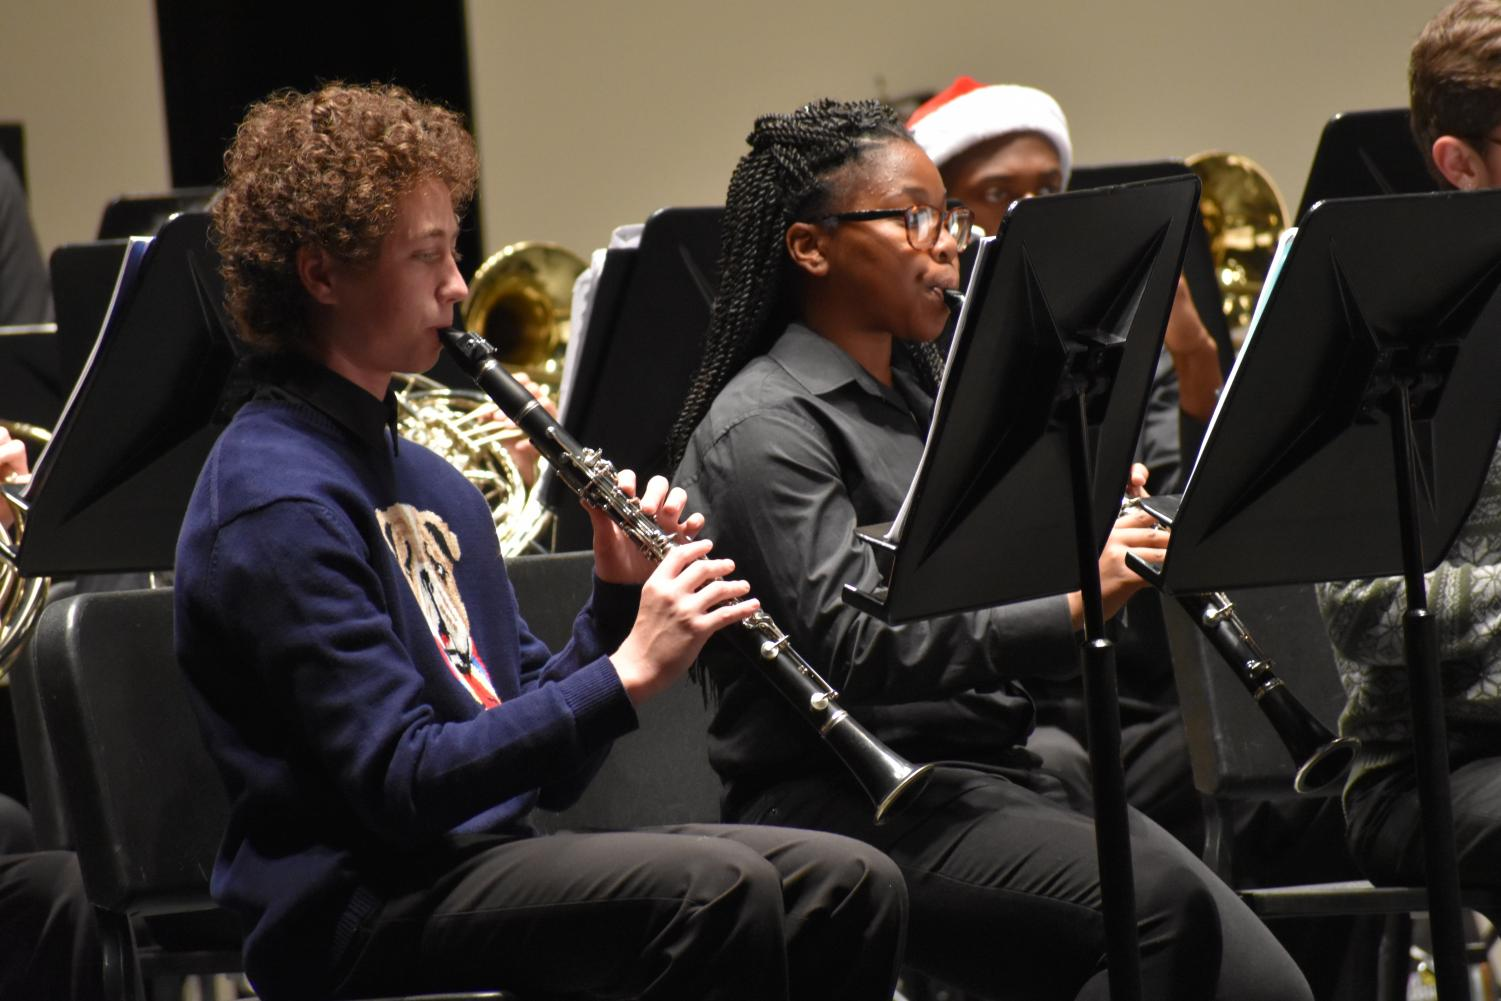 Holly+jolly+clarinet+%5C%5C+Playing+Let+the+Bells+Ring+freshmen+Dylan+Townsend+and+Jazmyn+McKeel+harmonize+with+the+Wind+Ensemble+at+the+band+Christmas+concert+Dec.+6.